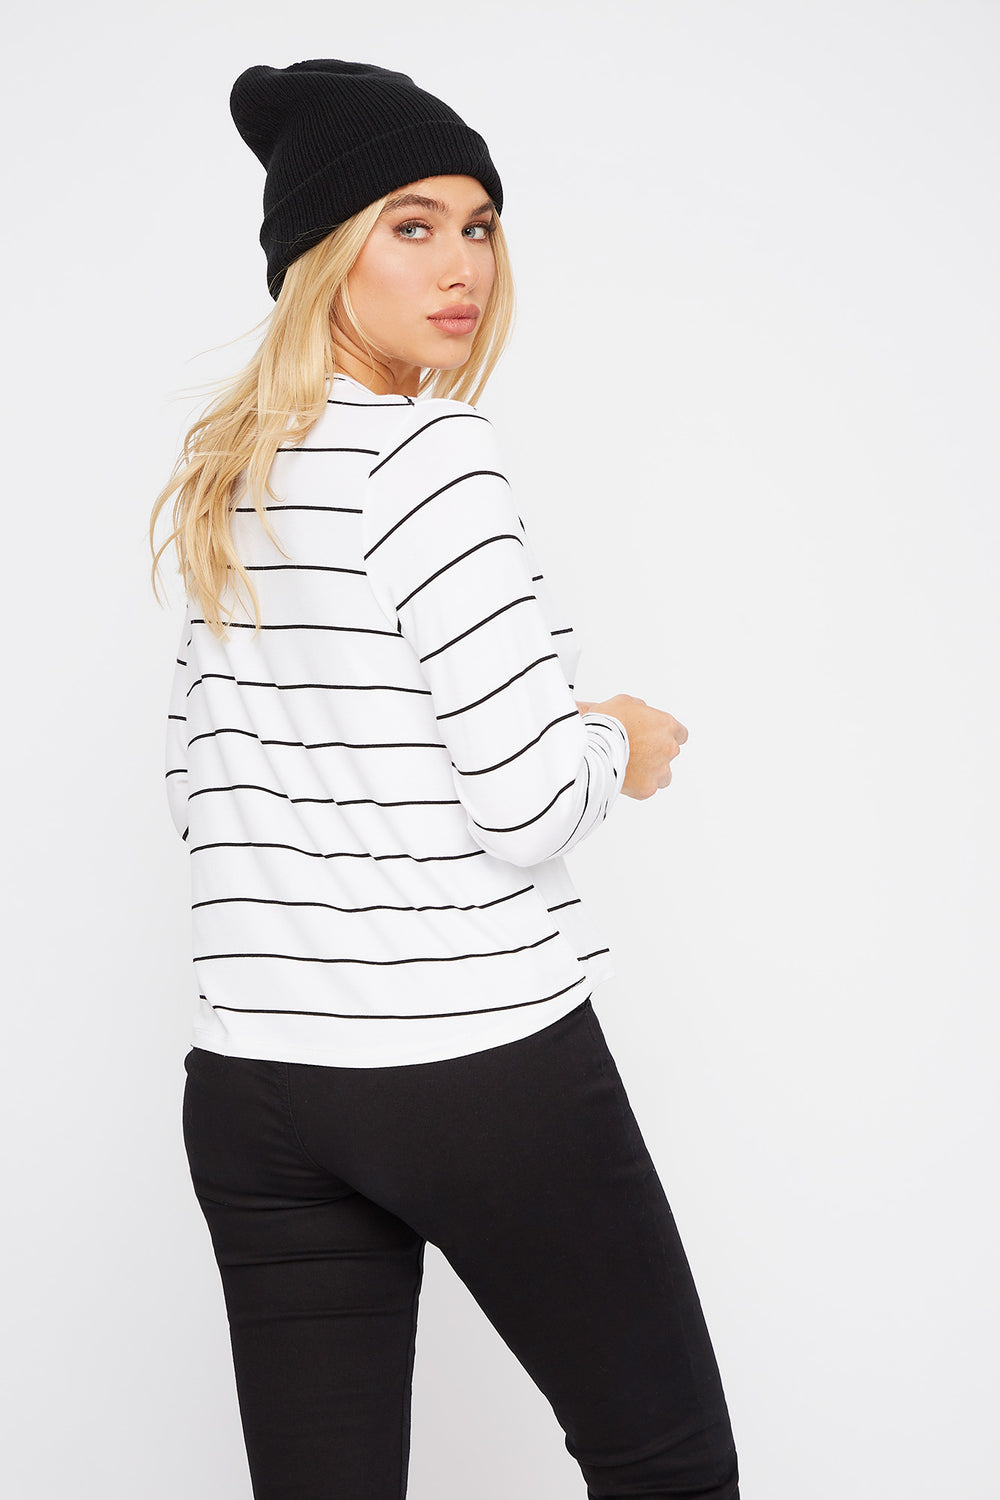 Scoop Neck Pocket Long Sleeve Black With White